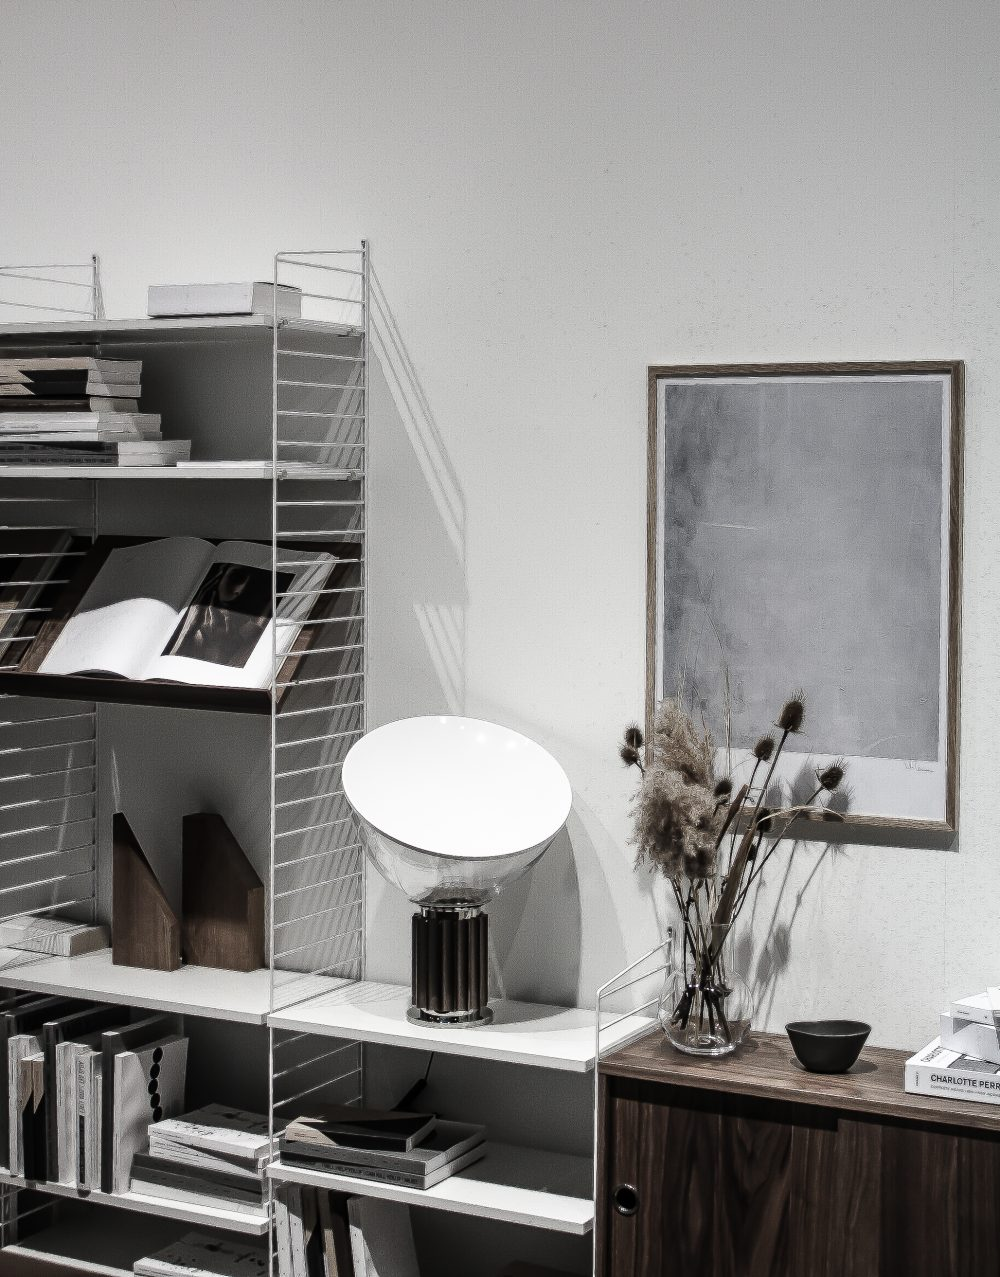 Lotta Agaton for String at IMM18